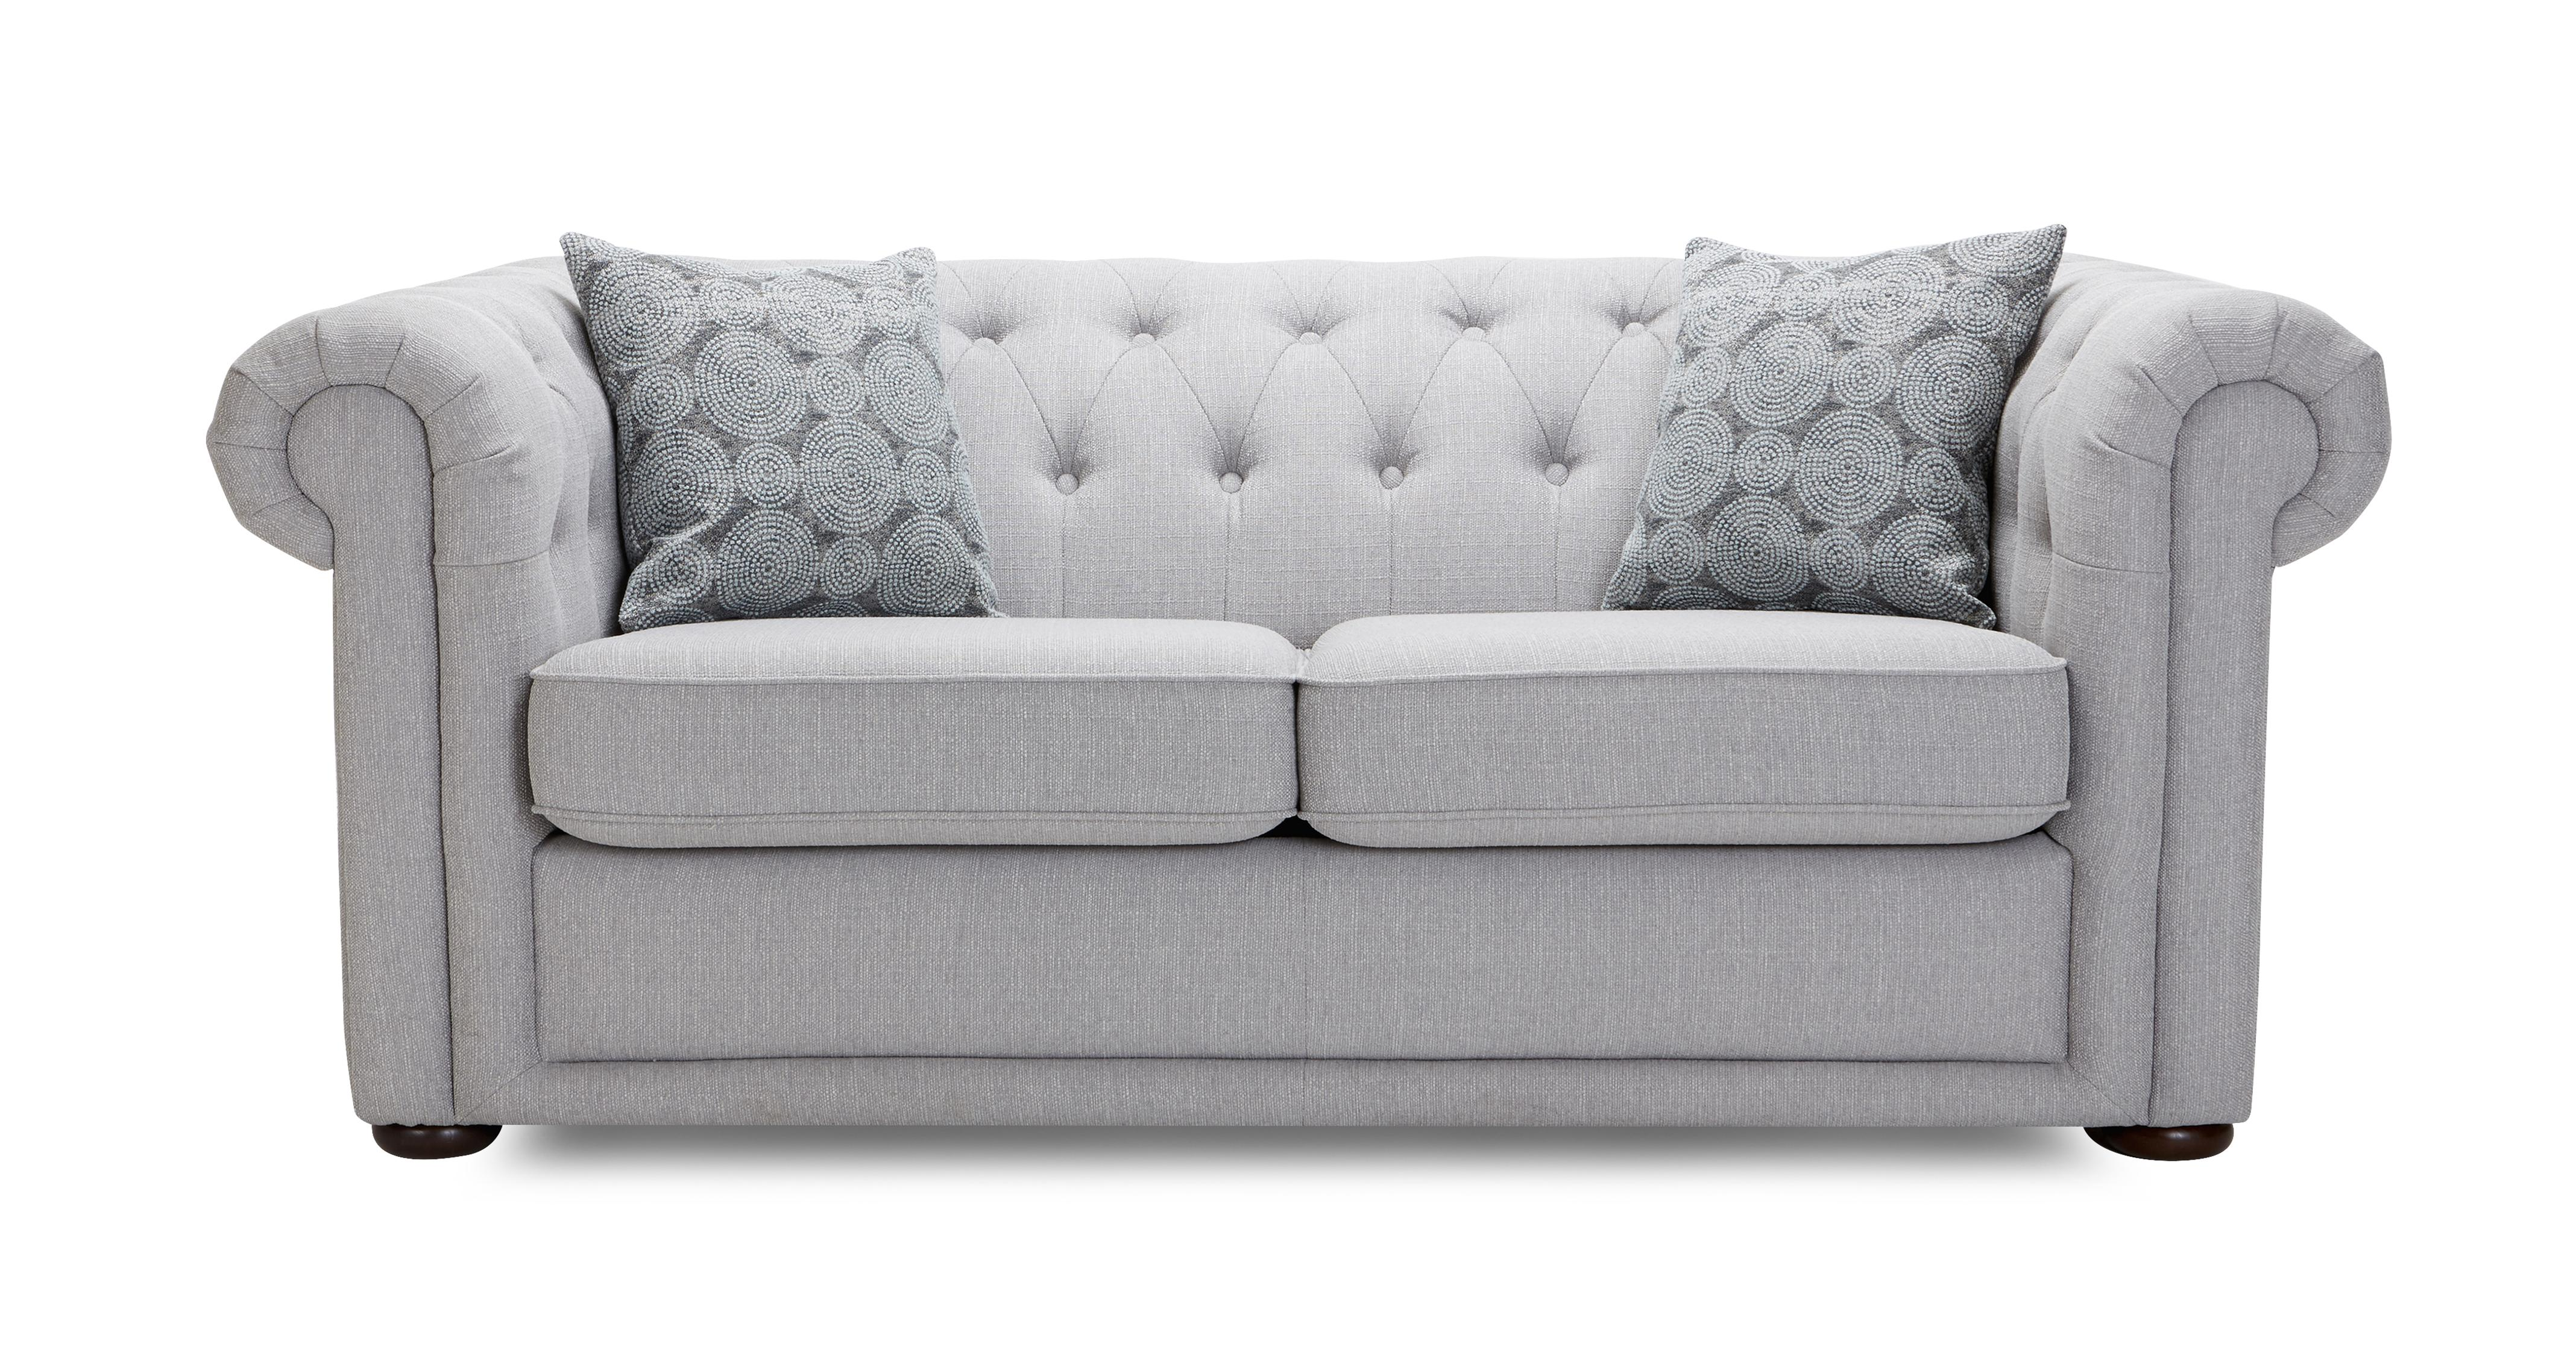 Chester Clearance 2 Seater Sofa Bed Abbey Plain DFS